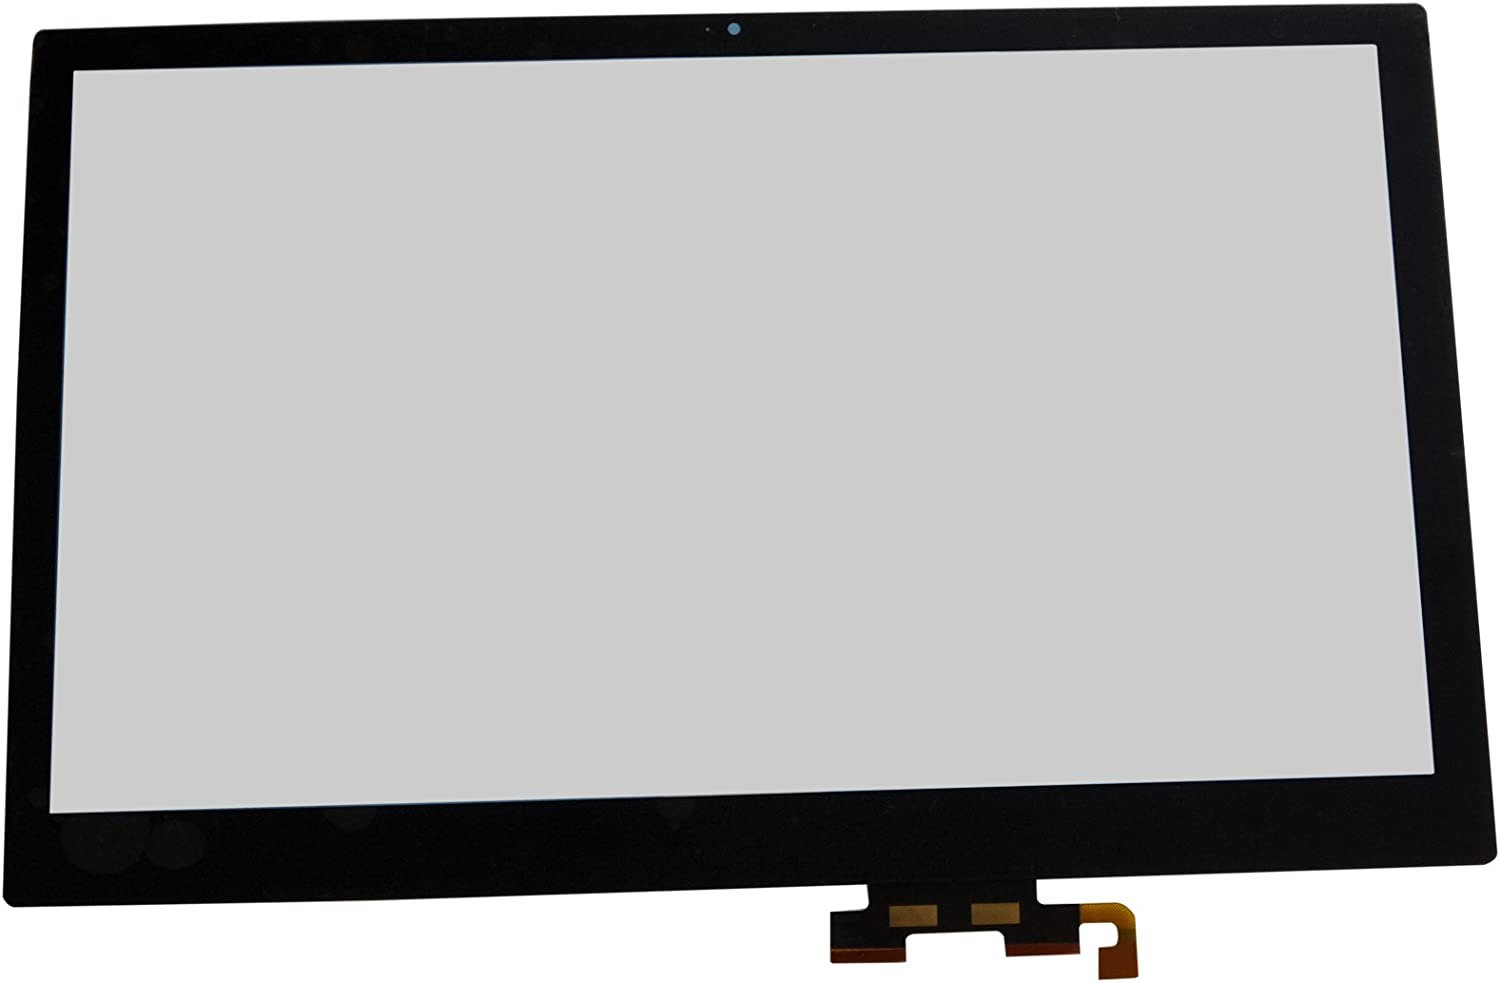 MooYes@ 15.6 inch touch screen glass panel replacement for Acer ASPIRE V5-552P-X617